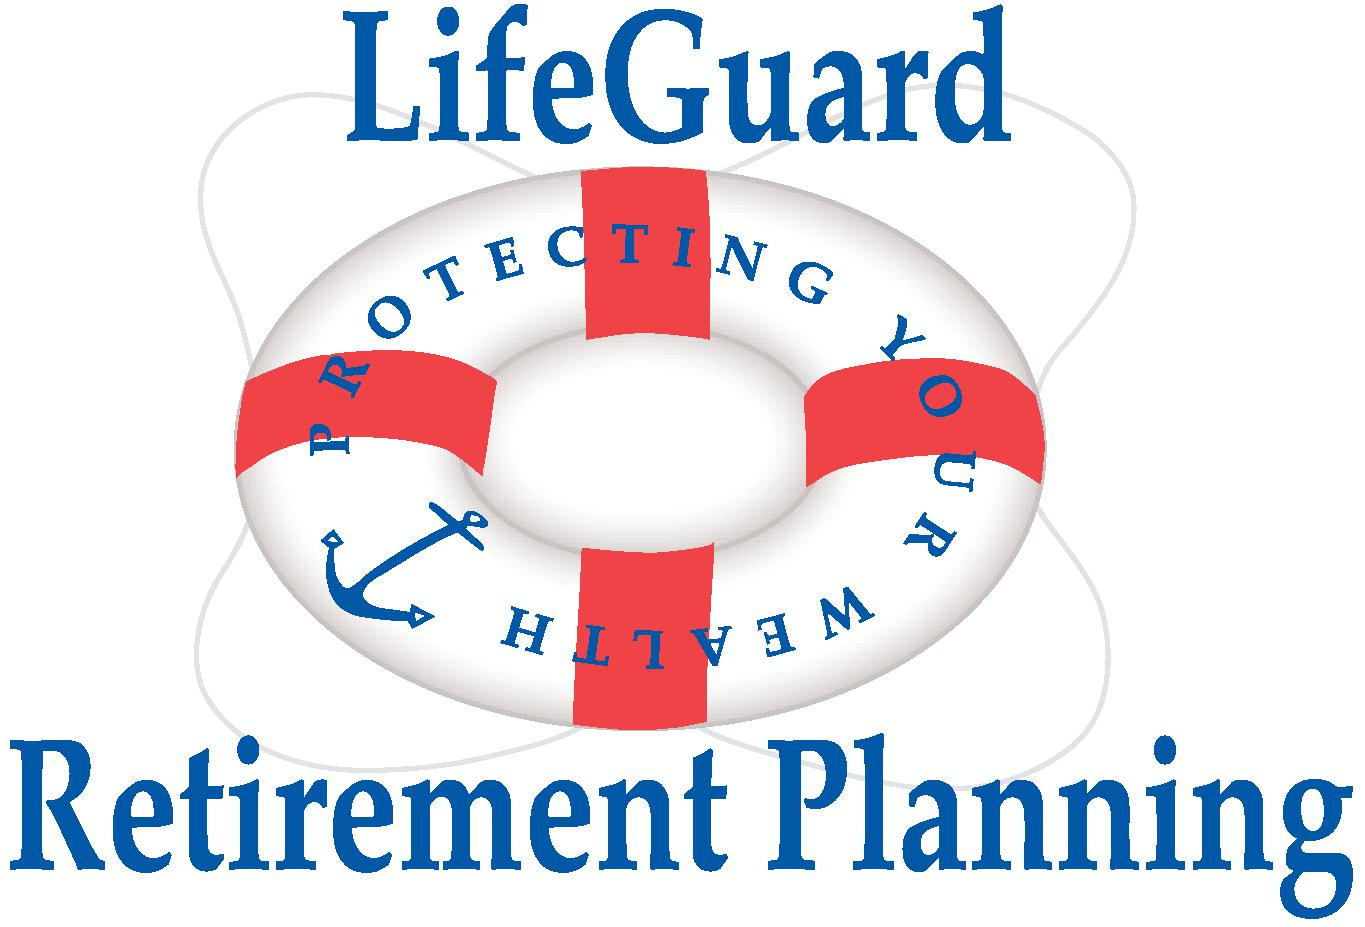 Lifeguard Financial Books